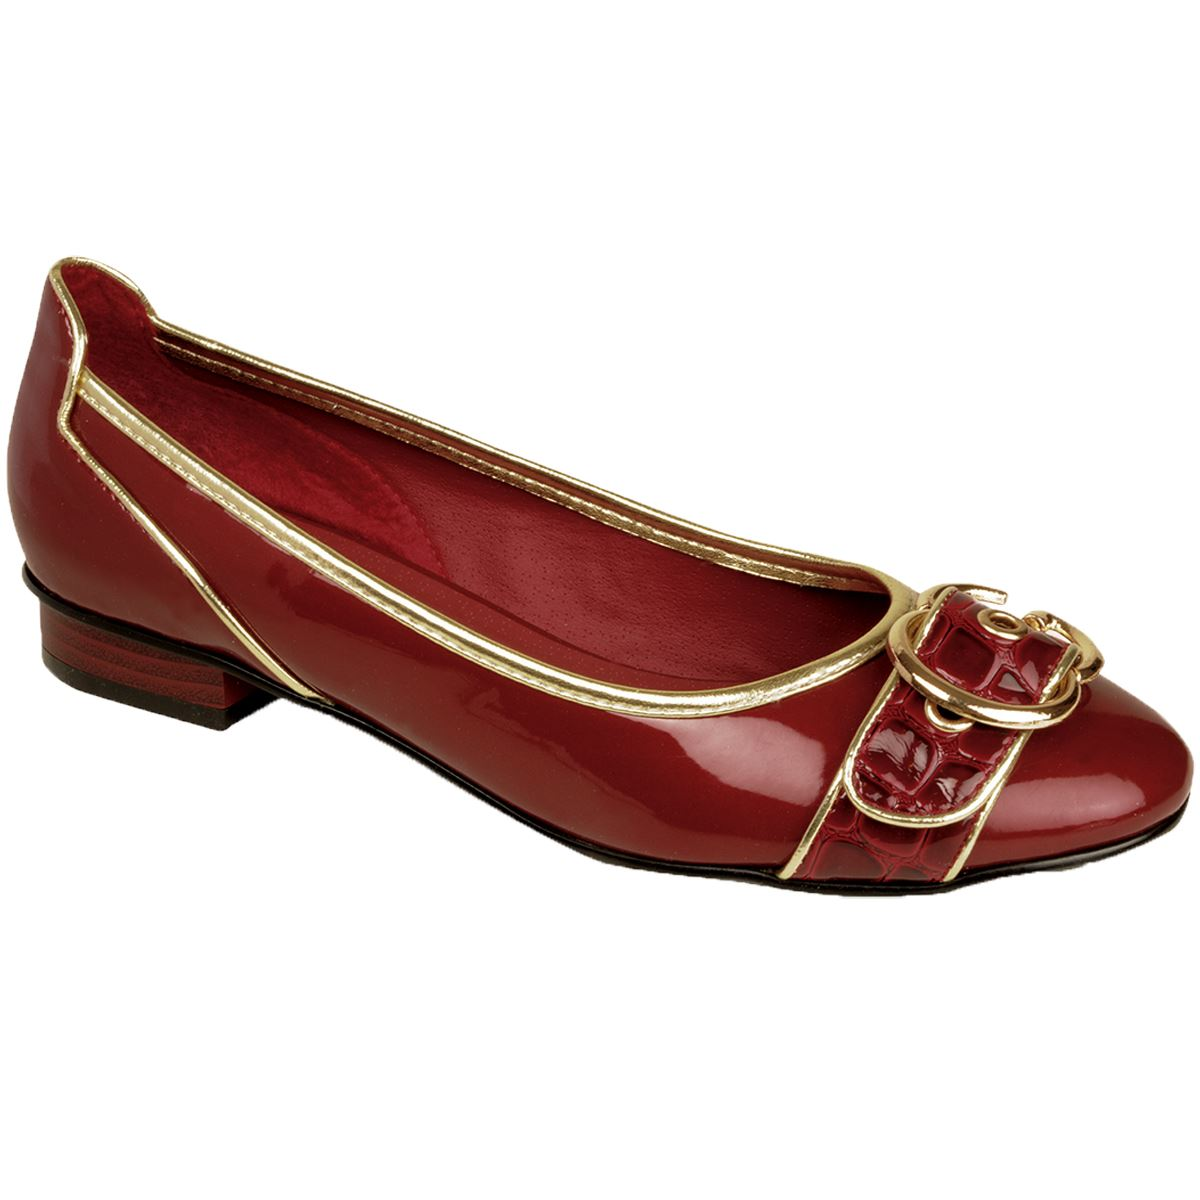 Women/'s Low Heel Gold Silver Trim Patent Shiny Front Buckle Ladies Flats Shoes